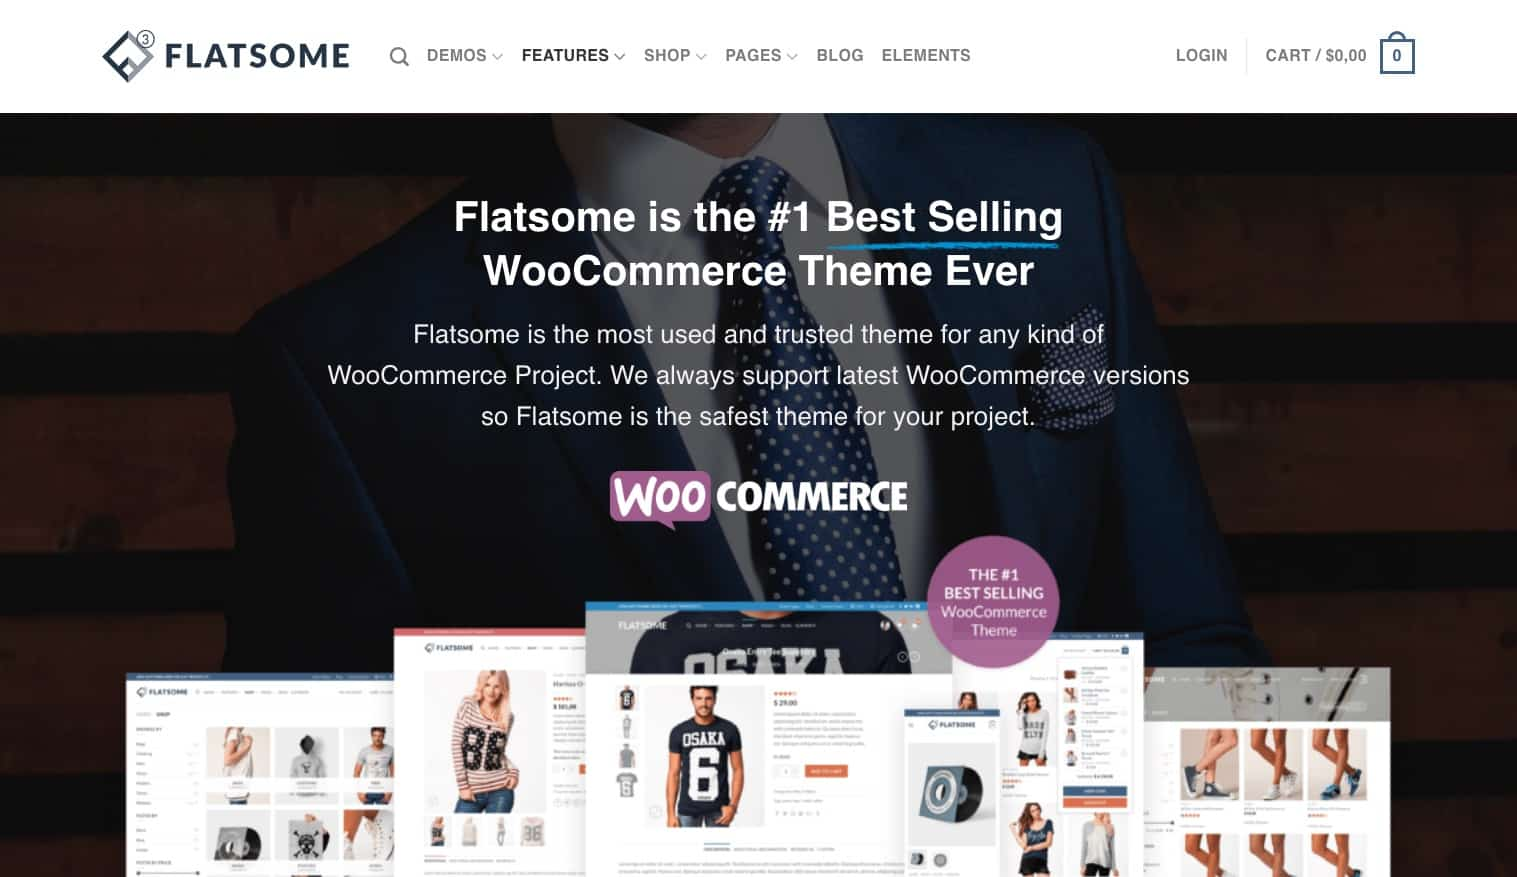 Flatsome is the #1 Best Selling WooCommerce Theme